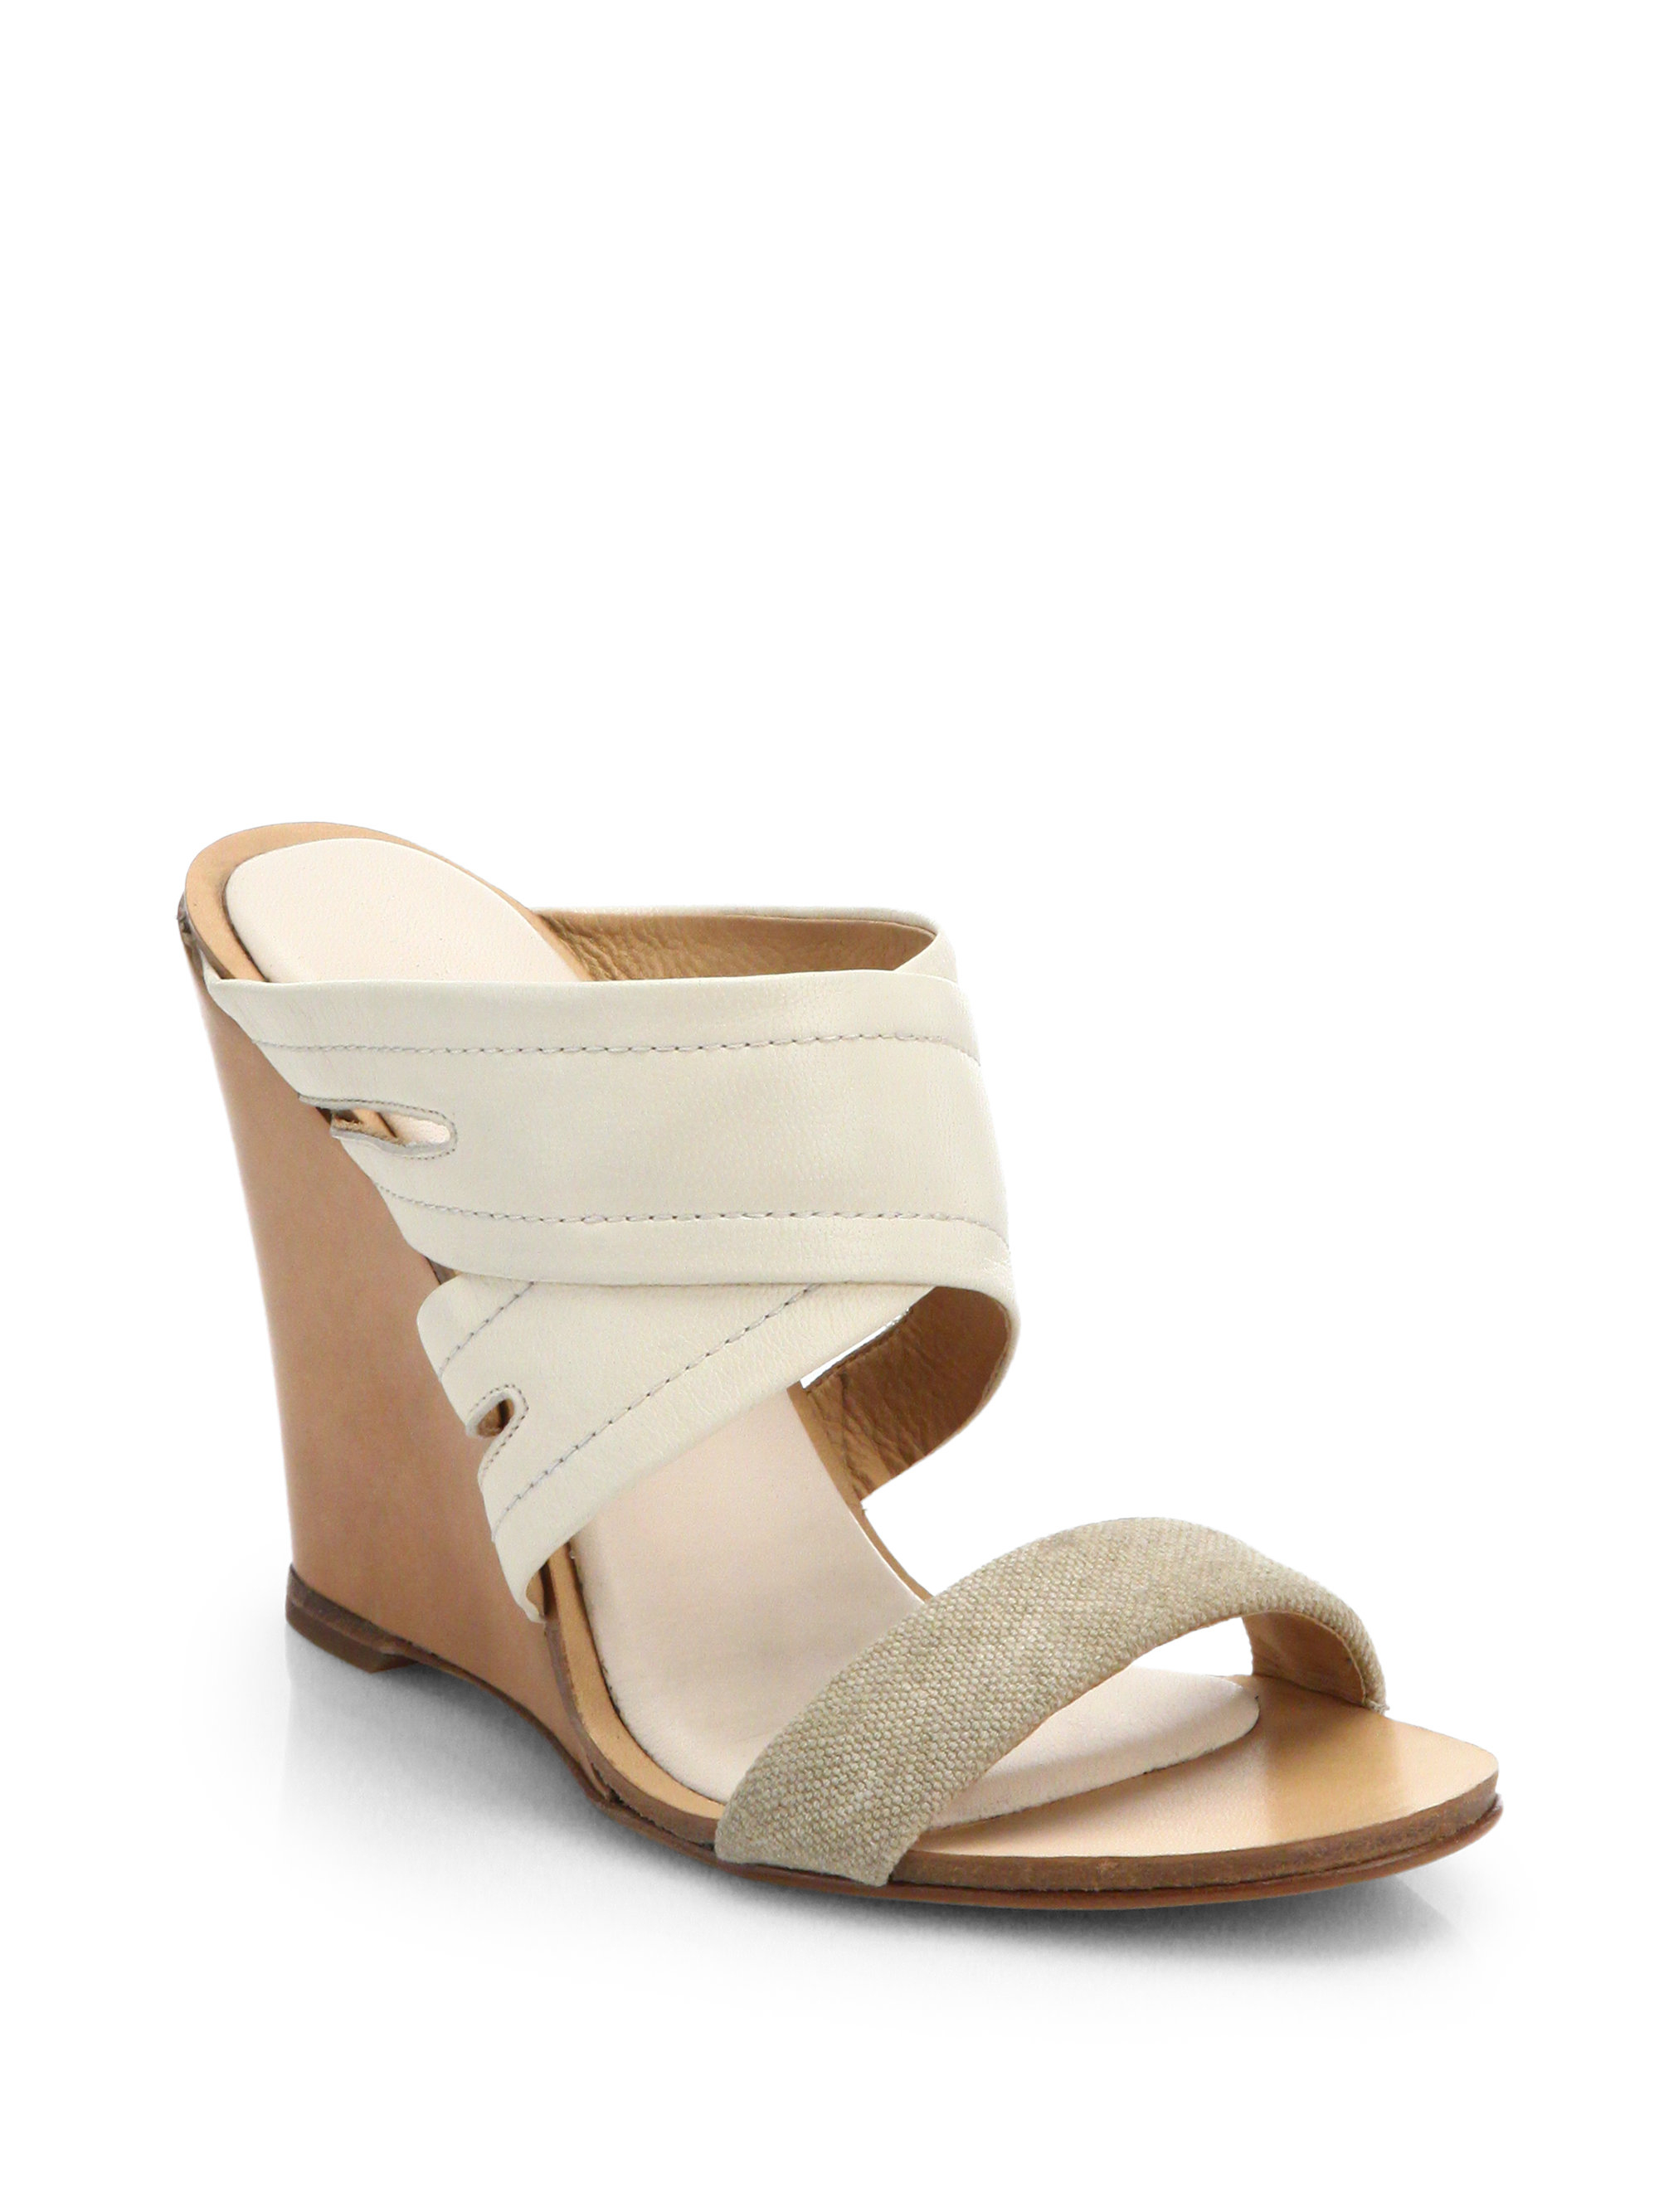 bbbd2f652ea Lyst - Rag   Bone Shaw Mule Wedge Sandals in Natural